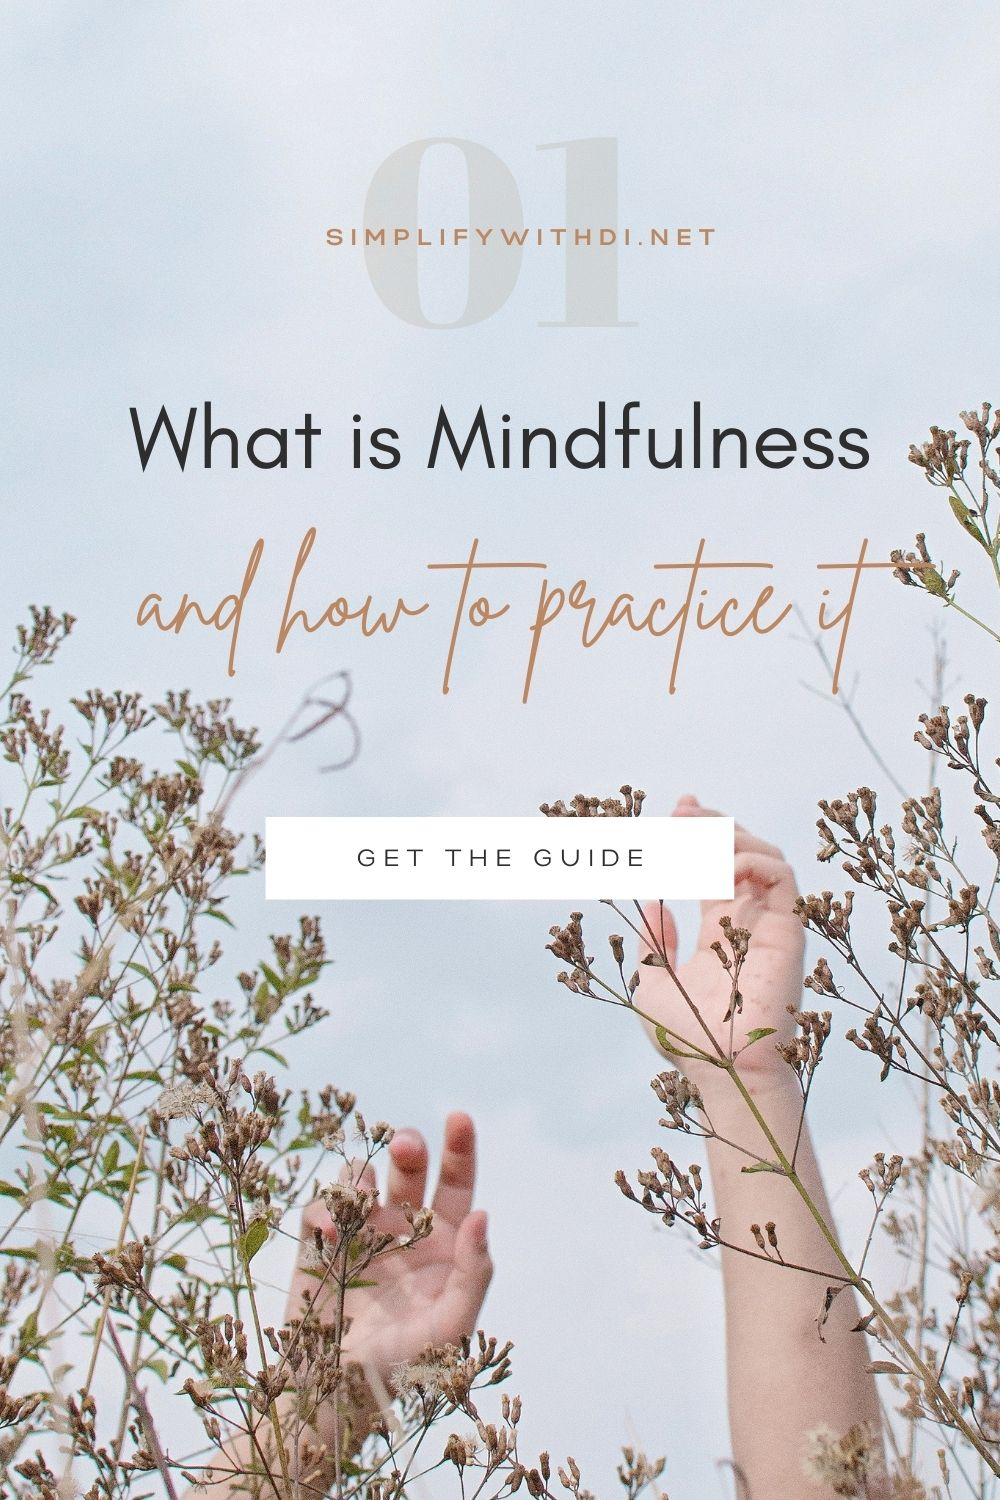 what is mindfulness and how to practice it; a guide